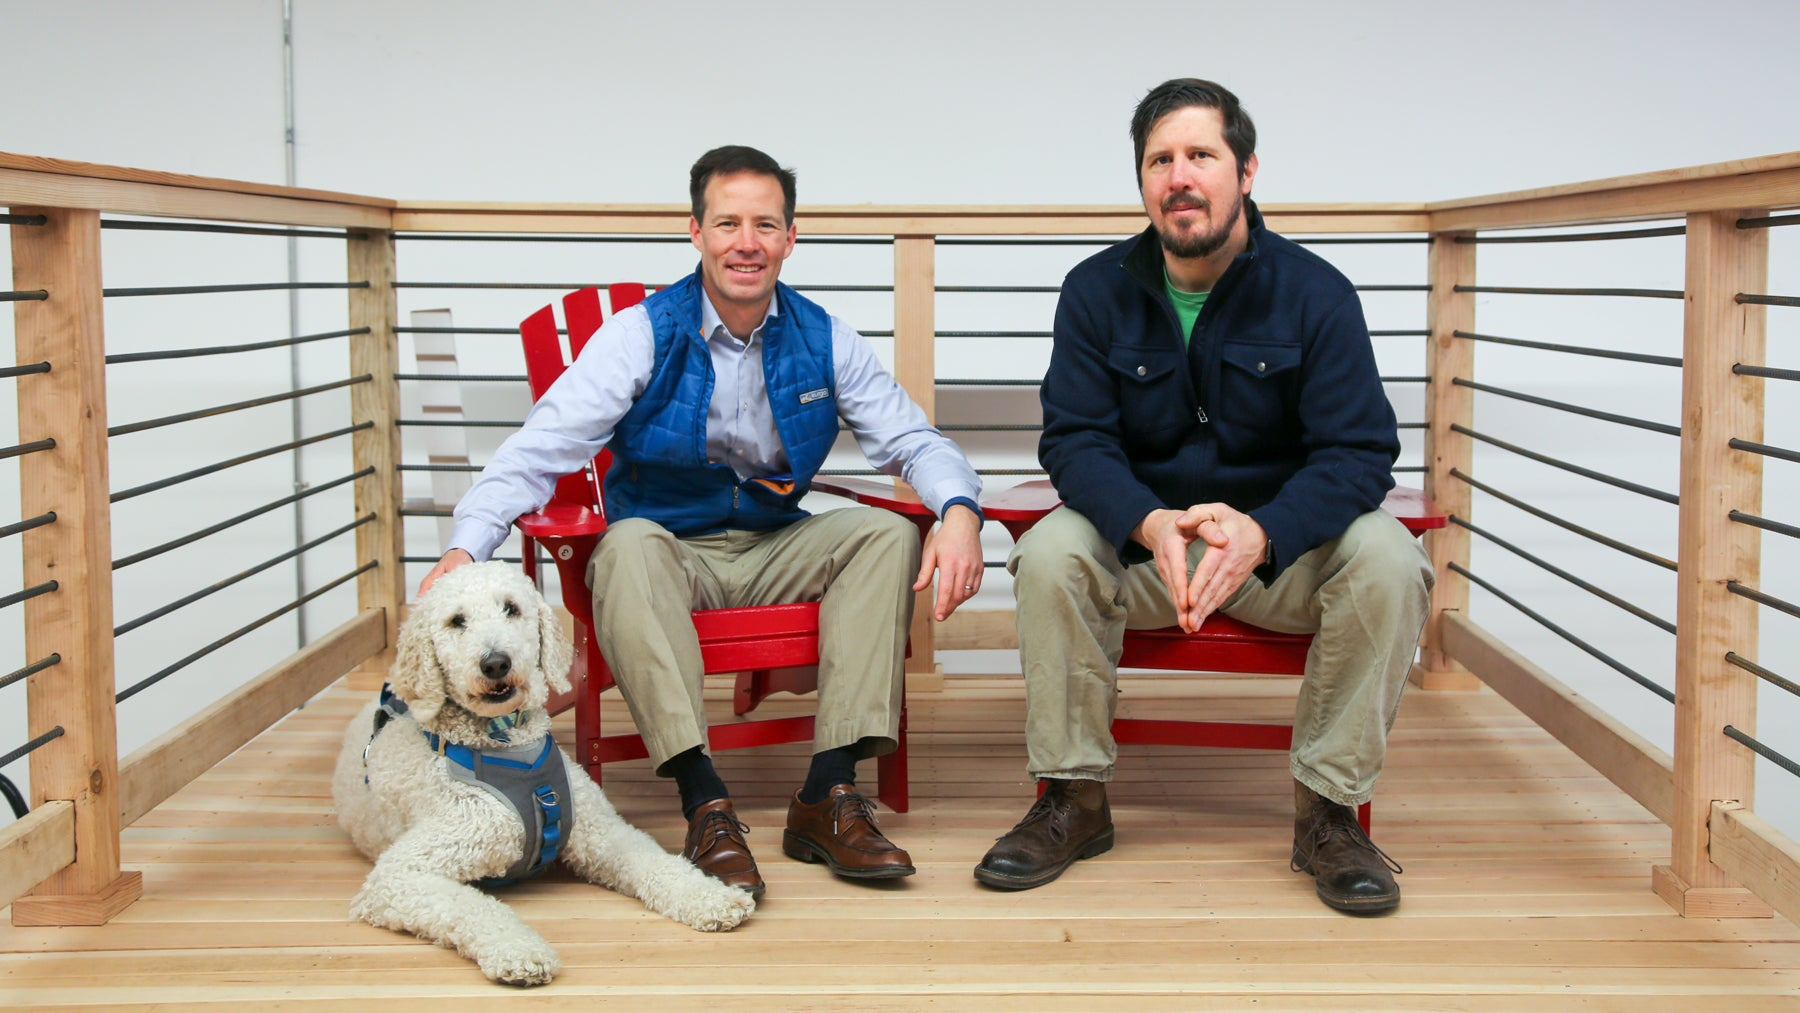 Gordie and Kitter Spater are brothers and co-owners of Kurgo, a Salisbury-based manufacturer of travel products and accessories for active dogs.